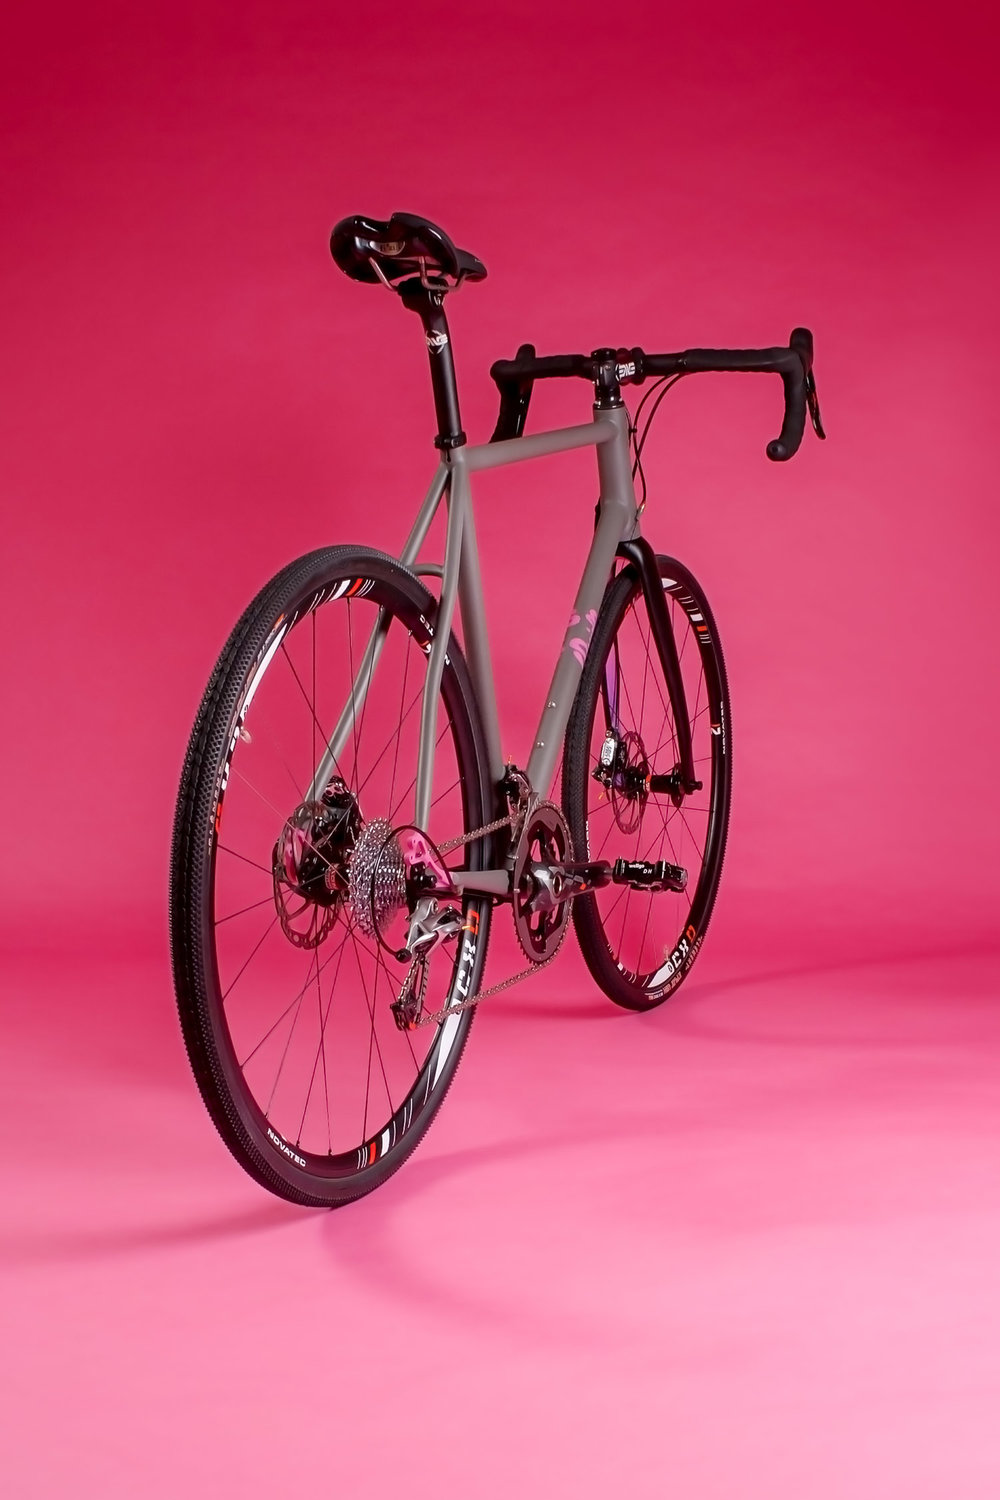 quirk_cycles_gravel_racerweb_0007.jpg